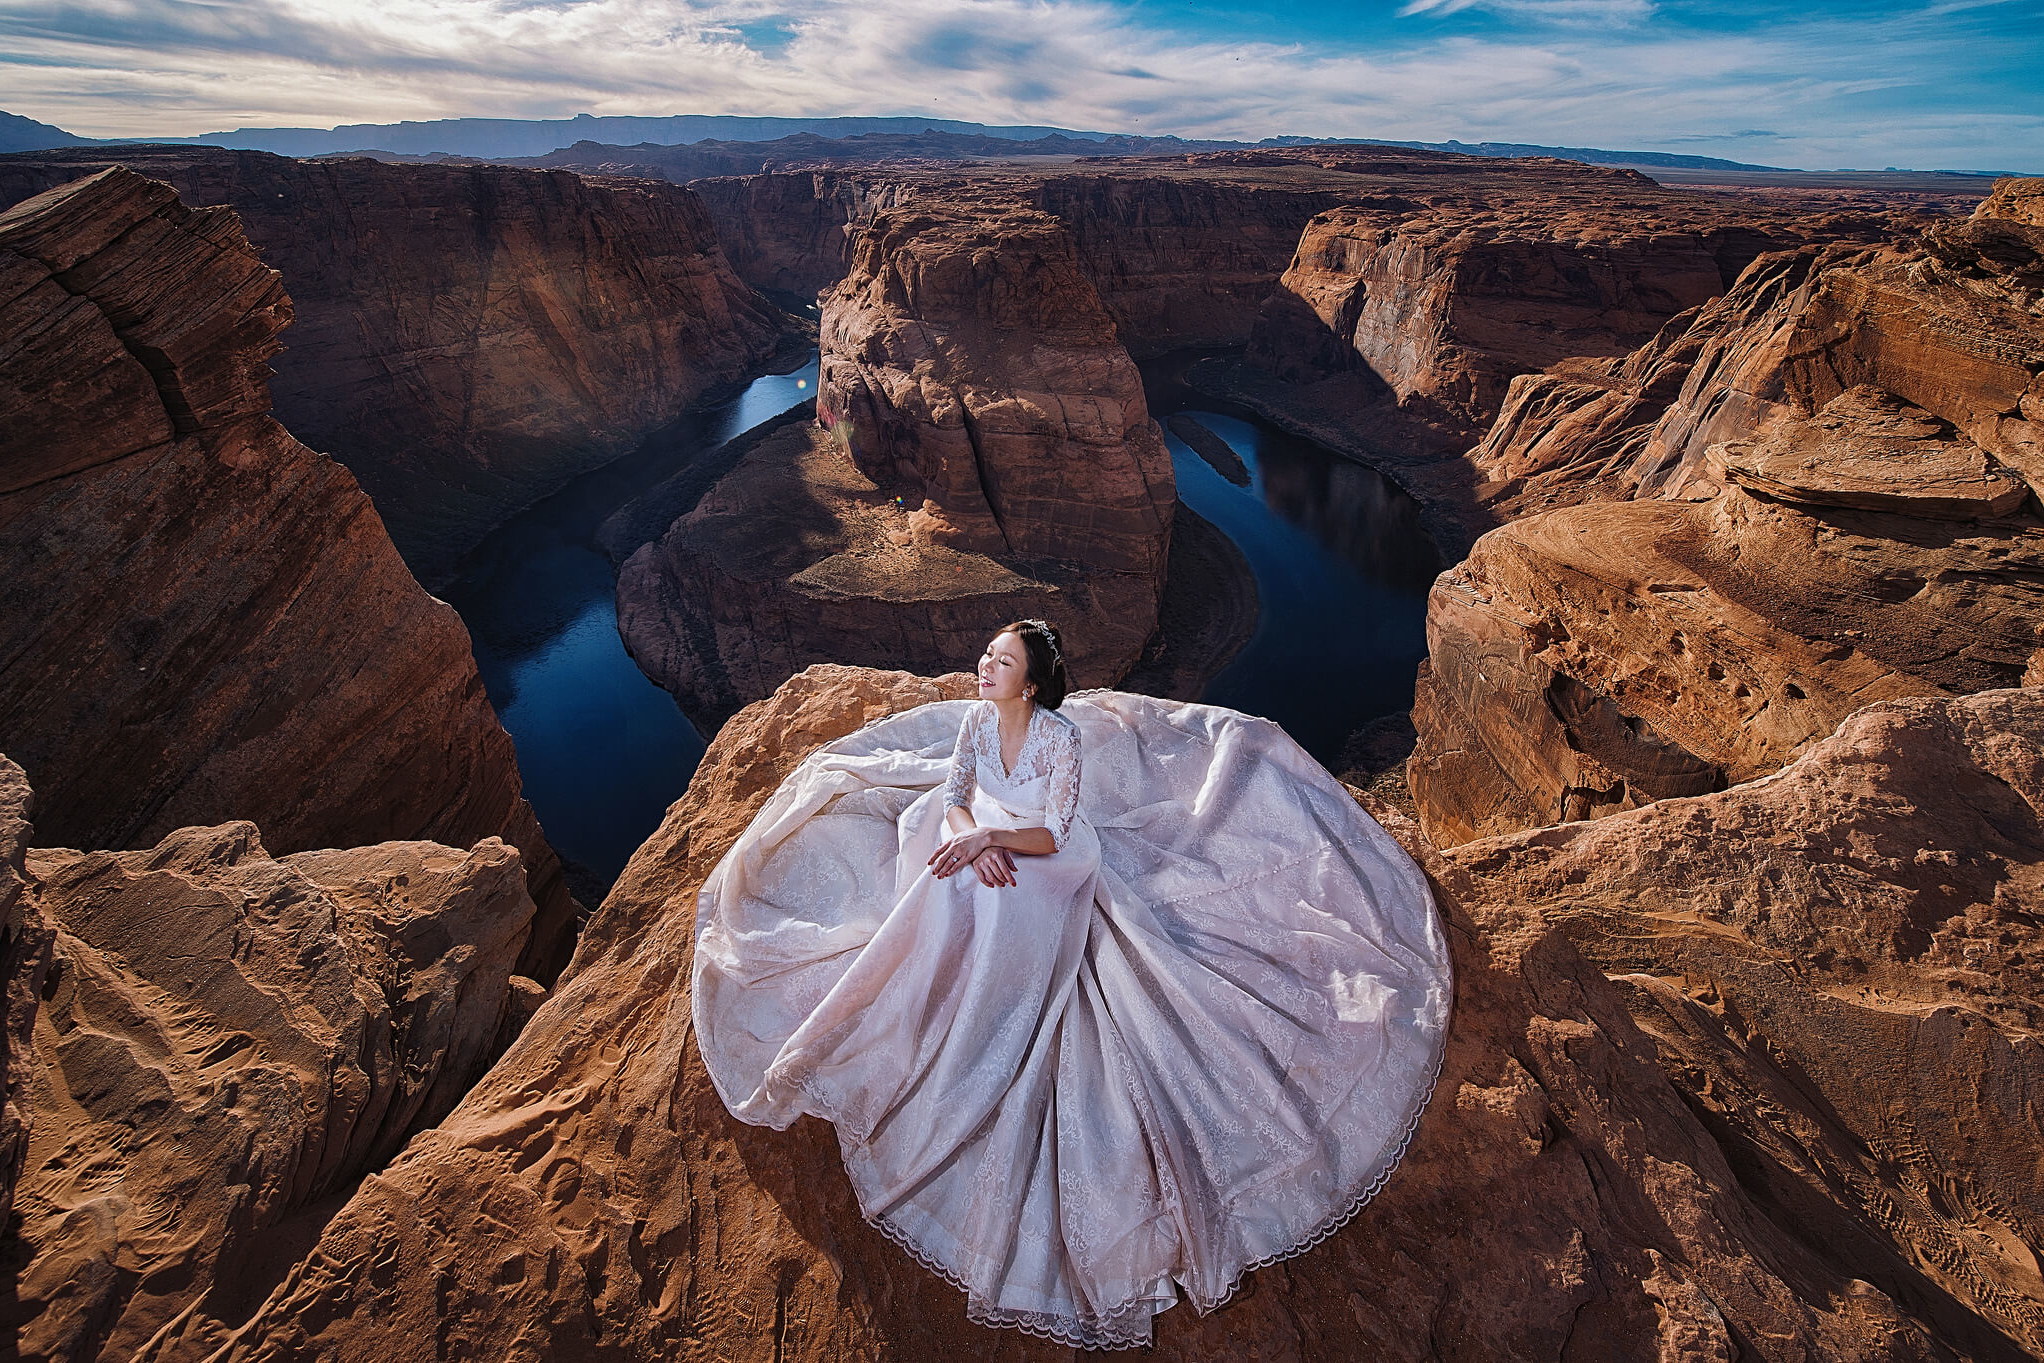 羚羊峽谷, 馬蹄灣, Antelope Canyon, horseshoe bend, arizona, 美西婚紗, 海外婚紗, Donfer, 東法